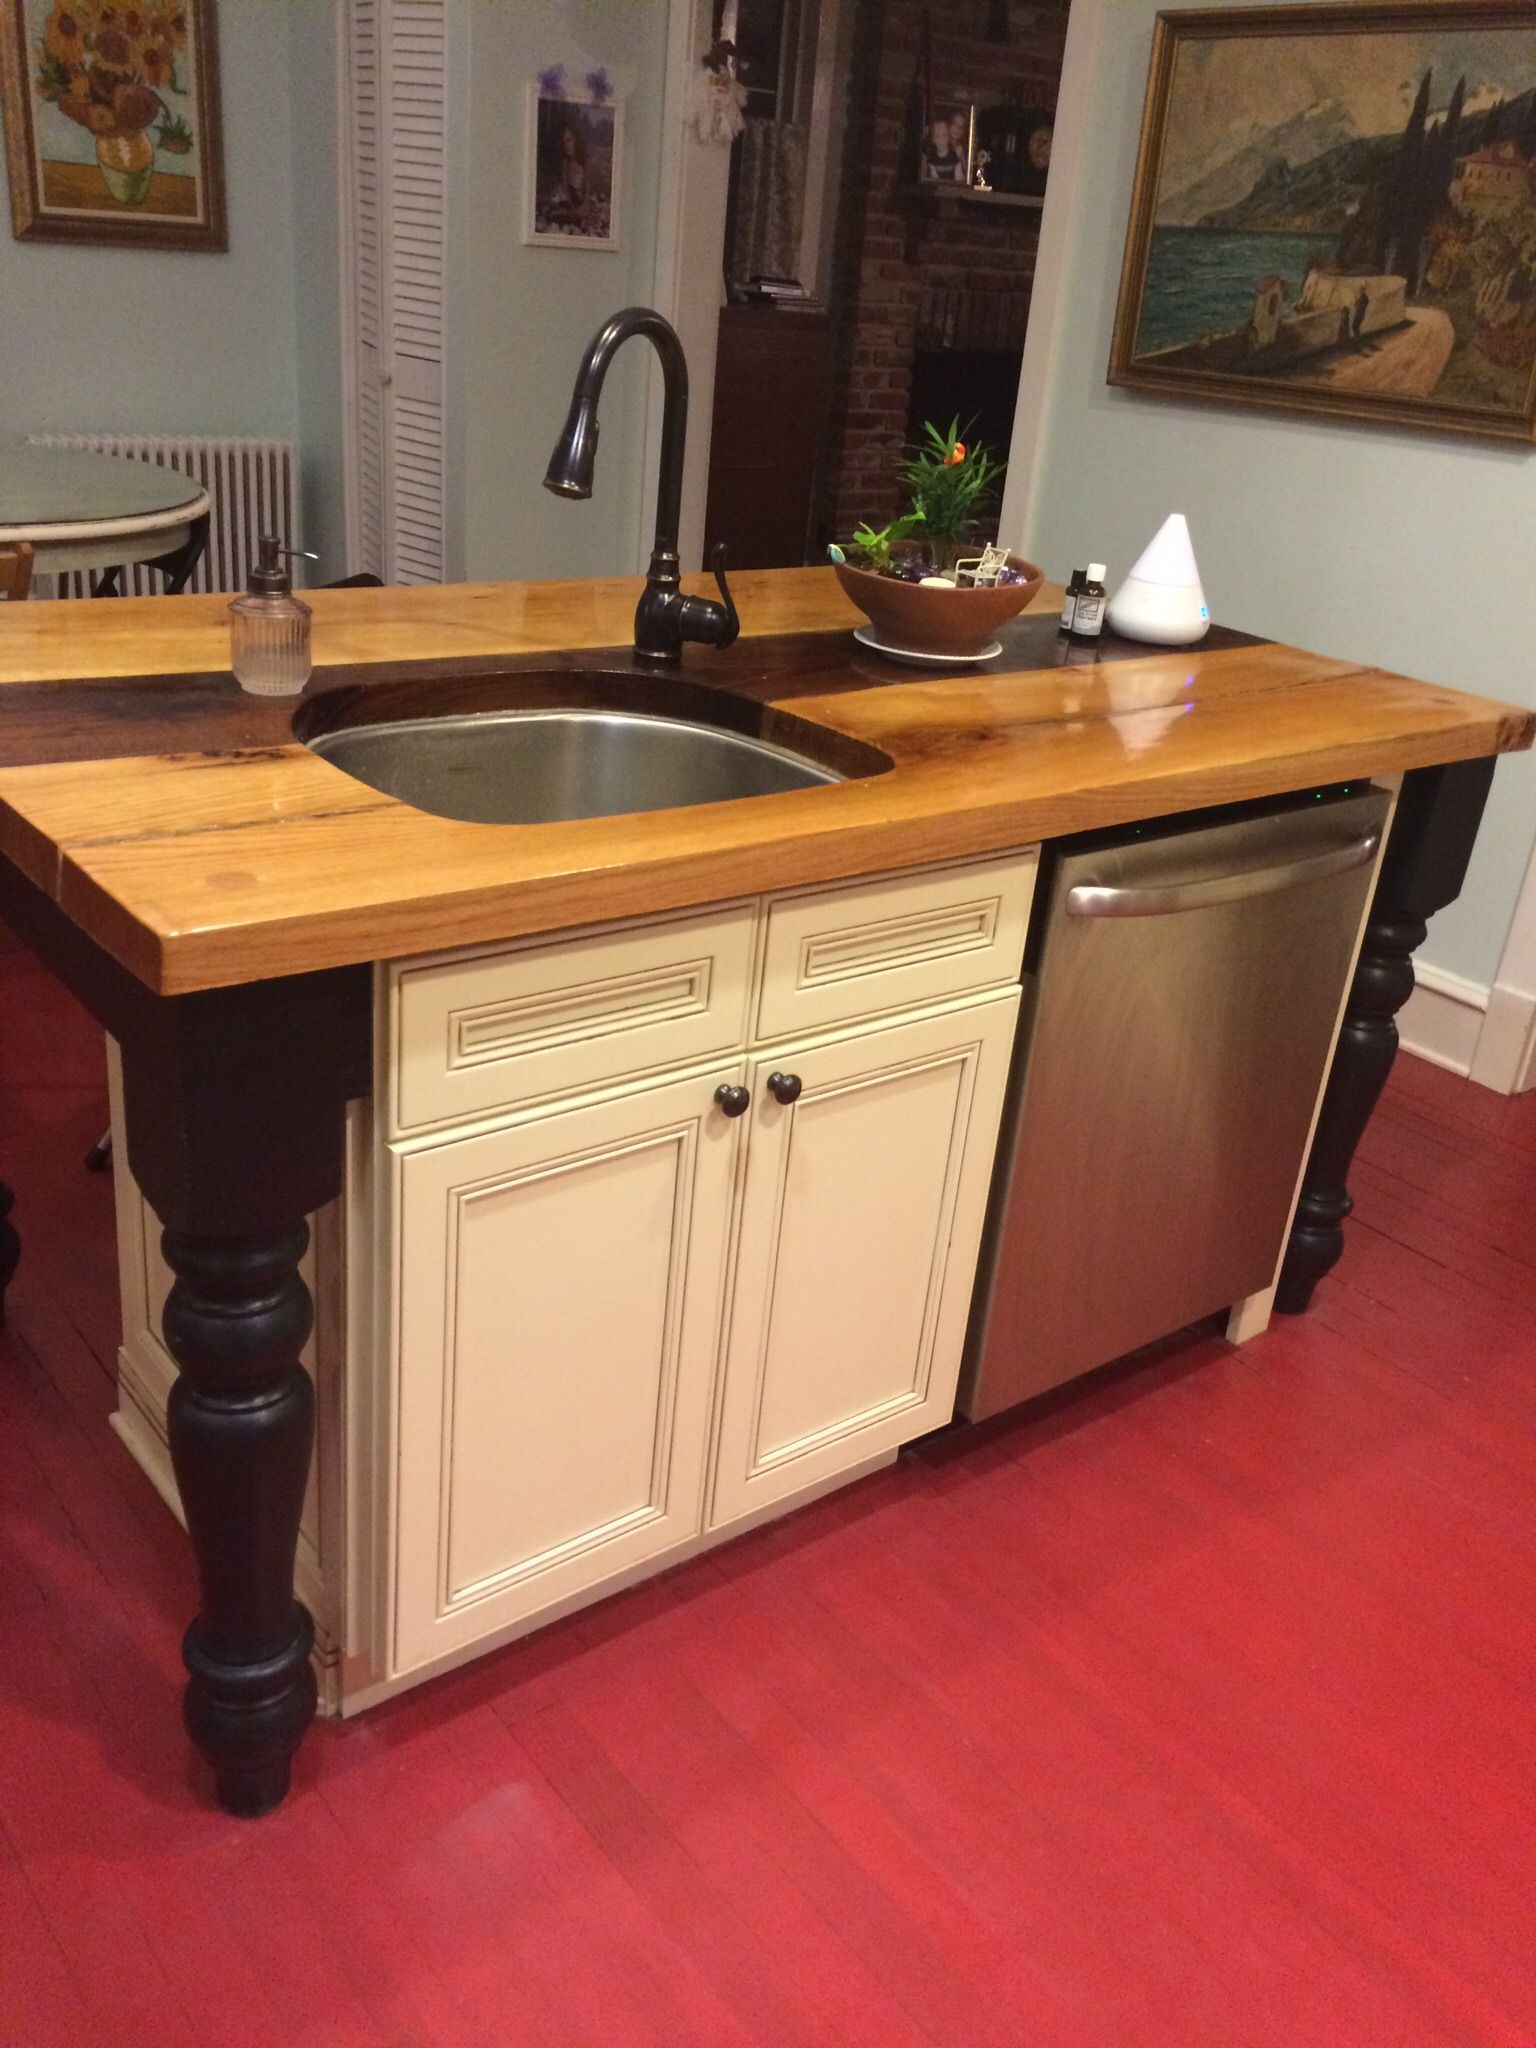 This Custom Wood Top Kitchen Island With Sink And Dishwasher Is One Of My Favor Kitchen Island With Sink Kitchen Island With Sink And Dishwasher Kitchen Design